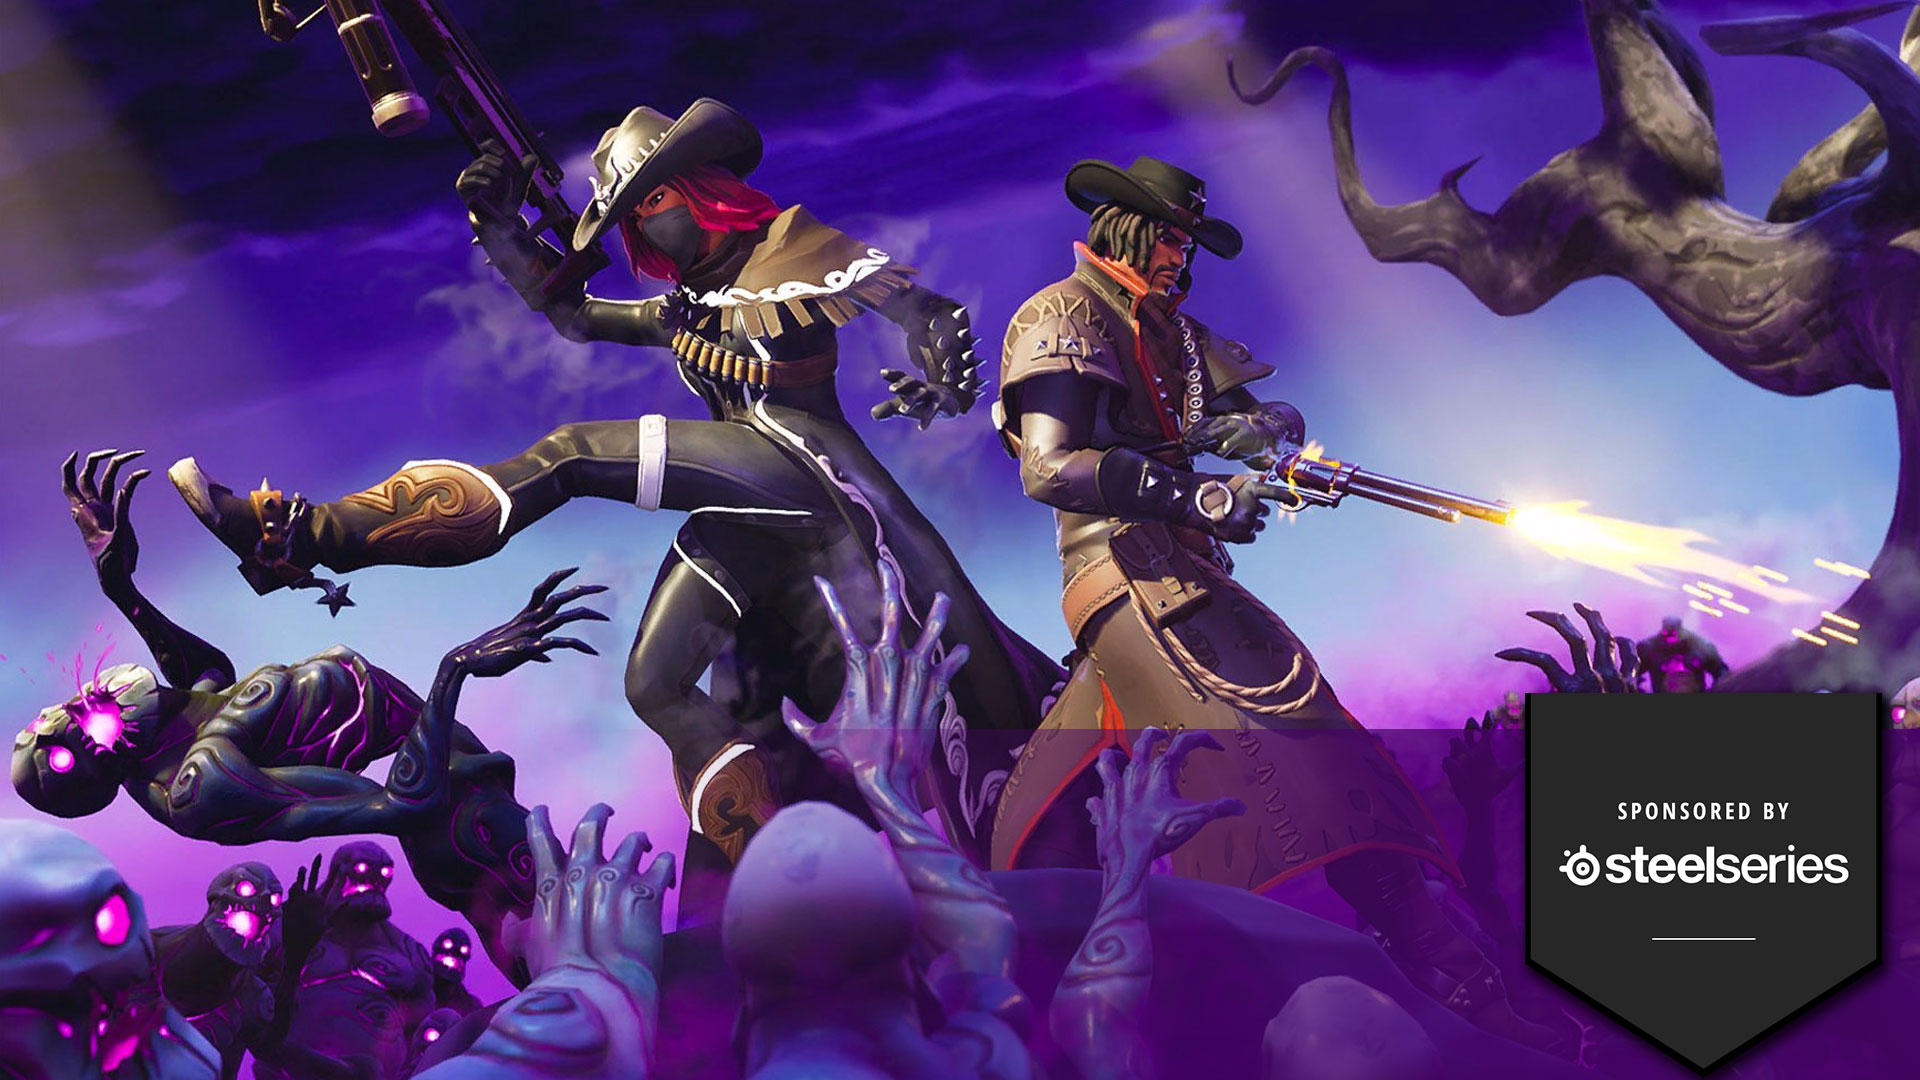 fortnite hunting party challenges where to find the hidden battle stars and banners from the loading screens gamesradar - why is fortnite taking so long to load ps4